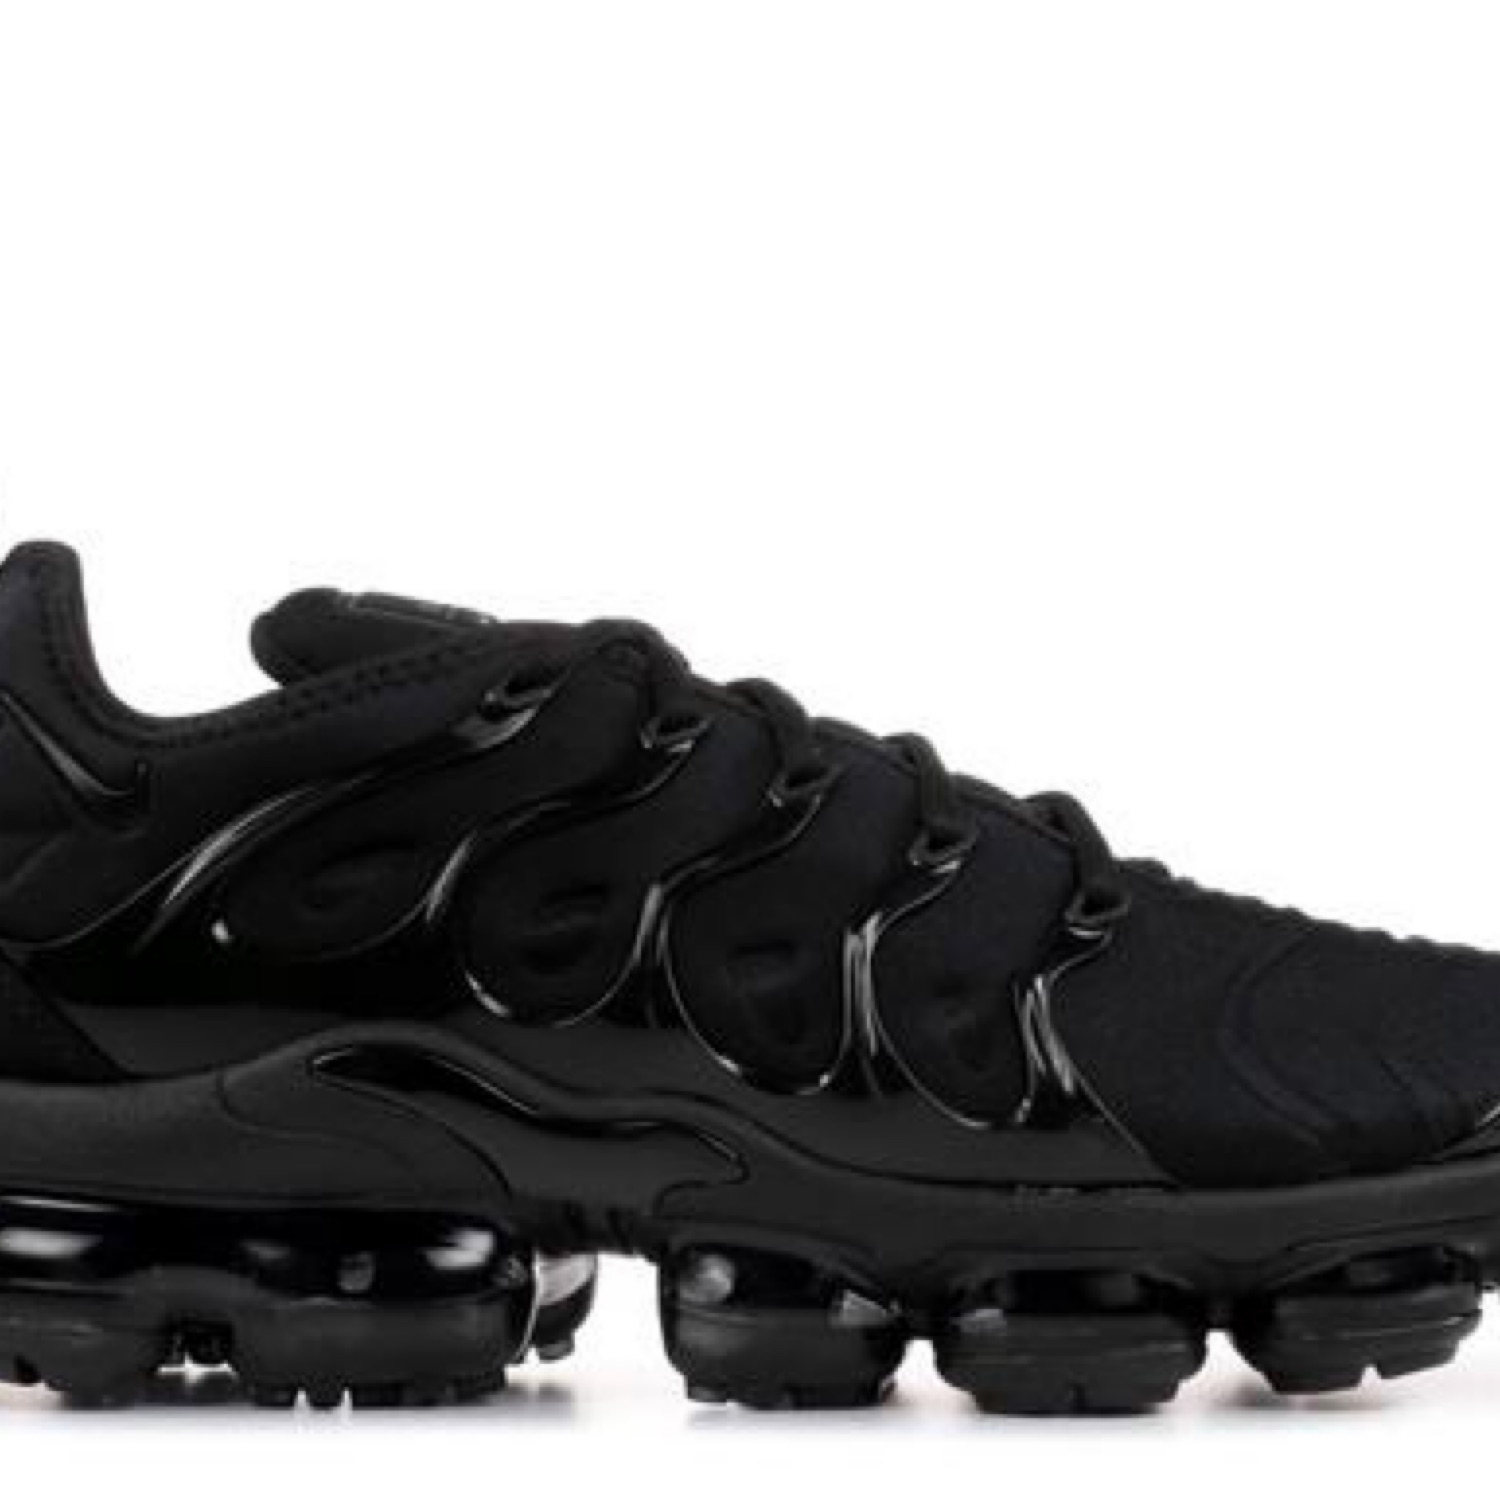 low priced 15a8d 9c52b Nike Air Vapormax Plus Triple Black